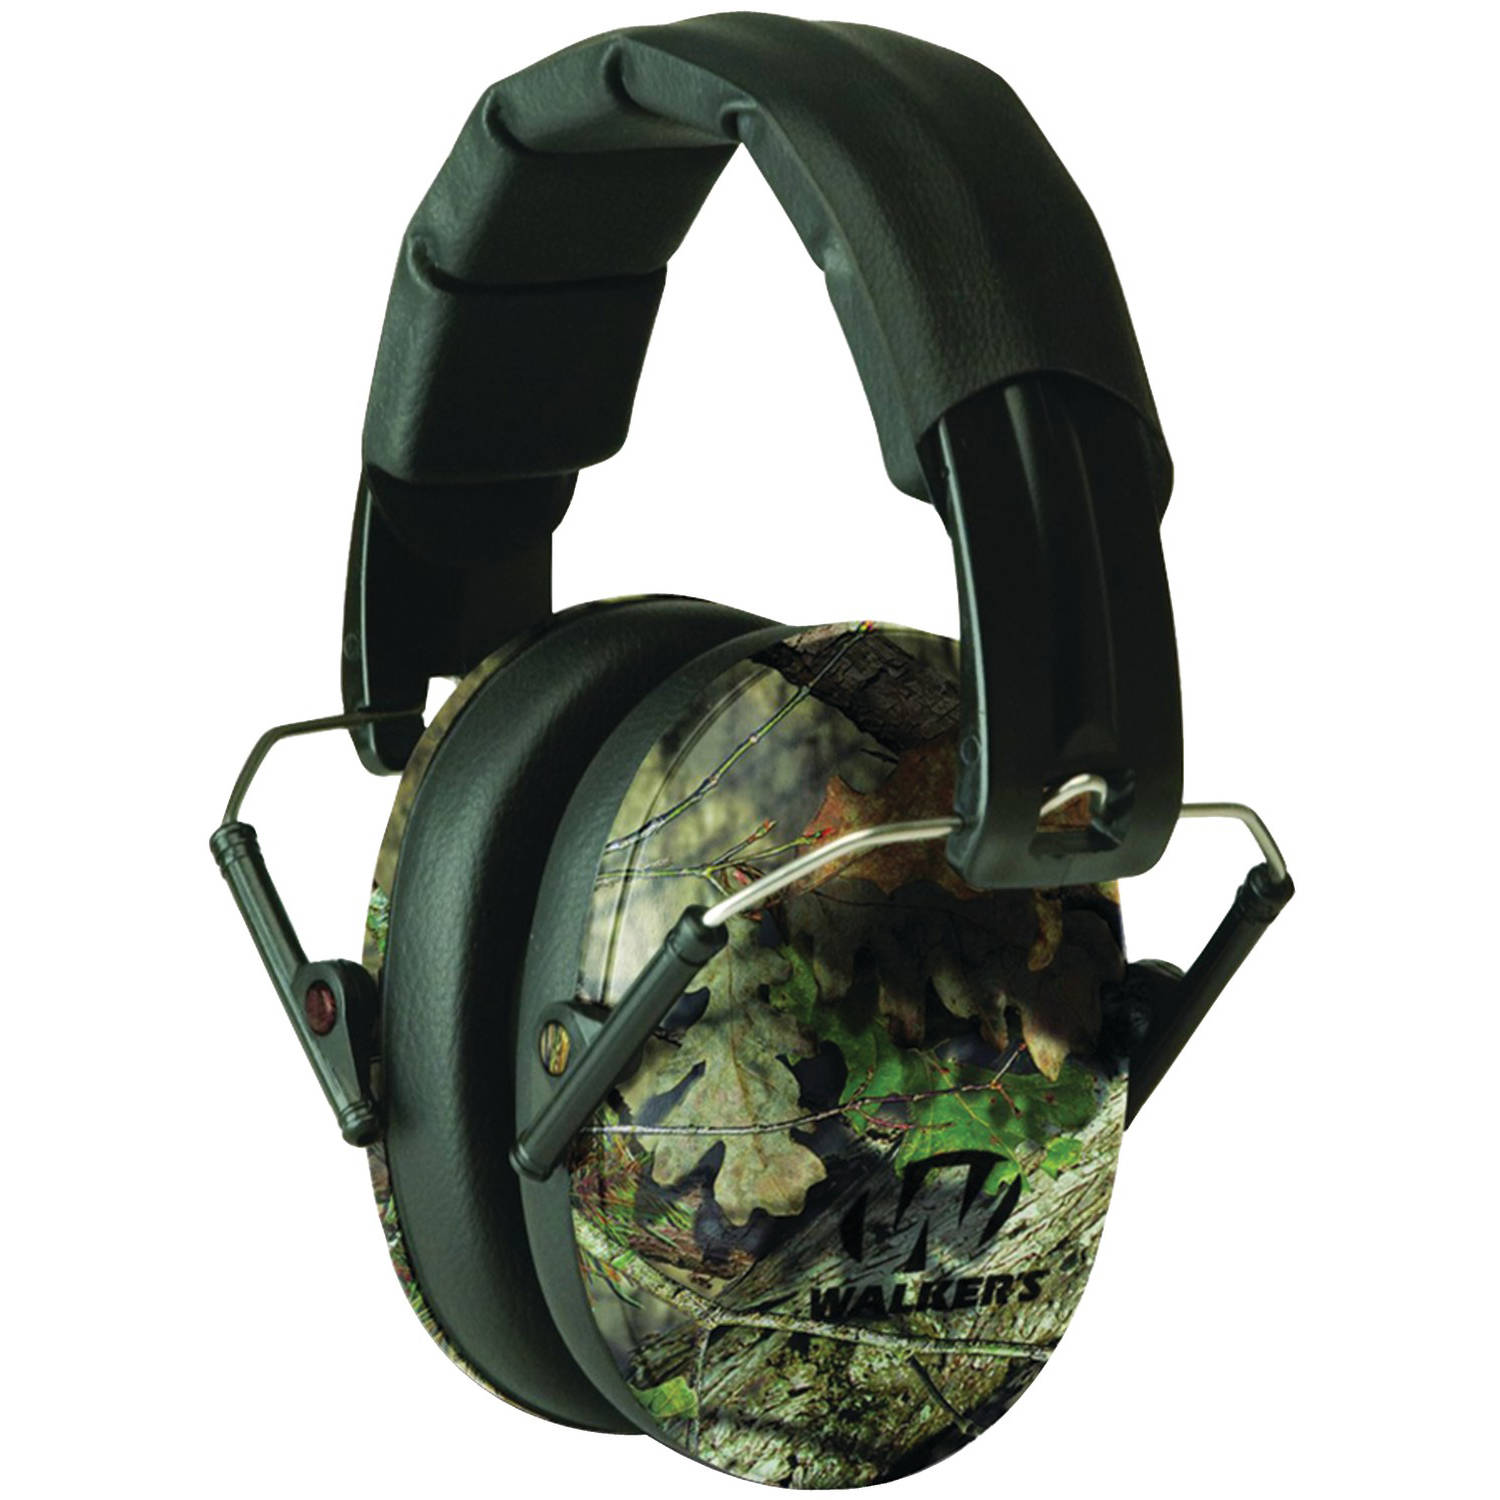 Walker's Game Ear PRO Low-Profile Folding Muff, Pink/Mossy Oak Camo